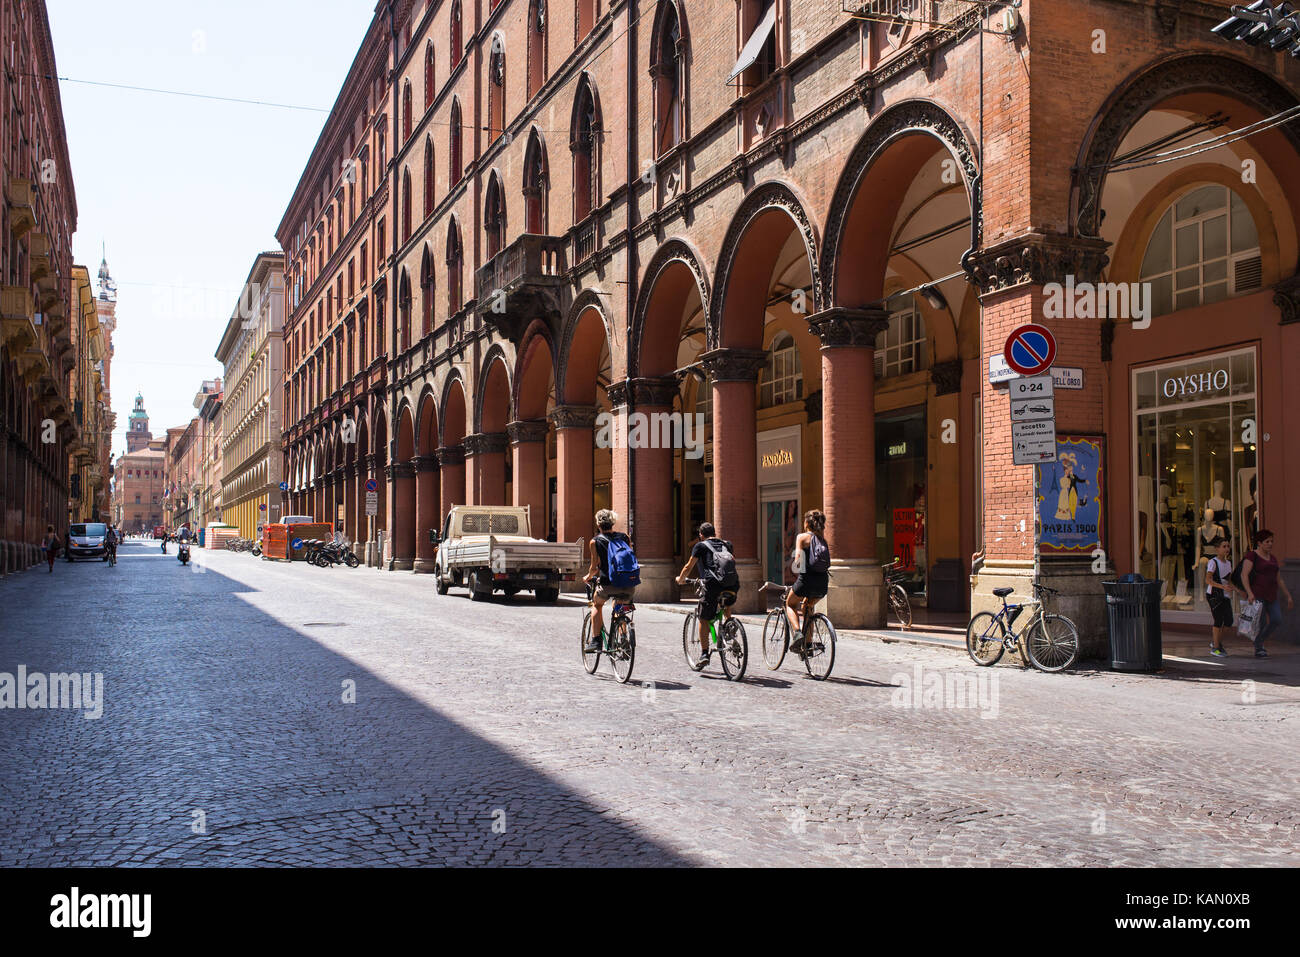 e2d60cb4c3b5 Students cycling in 'Via Indipendenza' one of the main street in the  historical centre